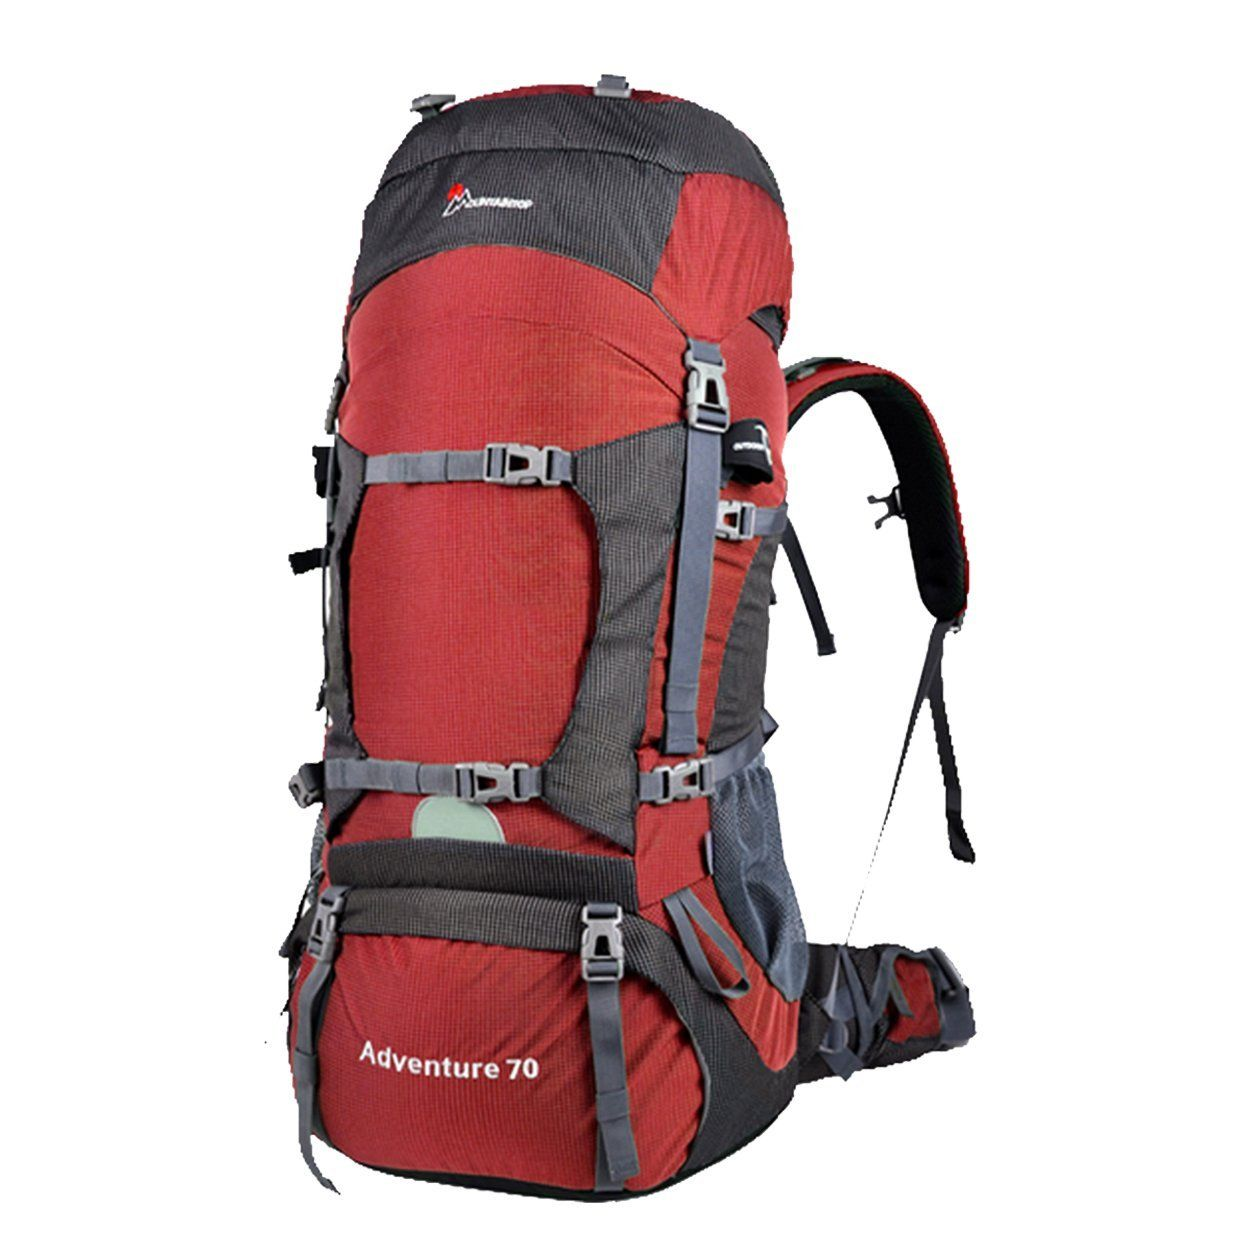 54dd70a8b7 Oxking 70L Outdoor Hiking Trekking Camping Backpack Waterproof  Mountaineering Bag Large Travel Climbing Rucksack with Rain